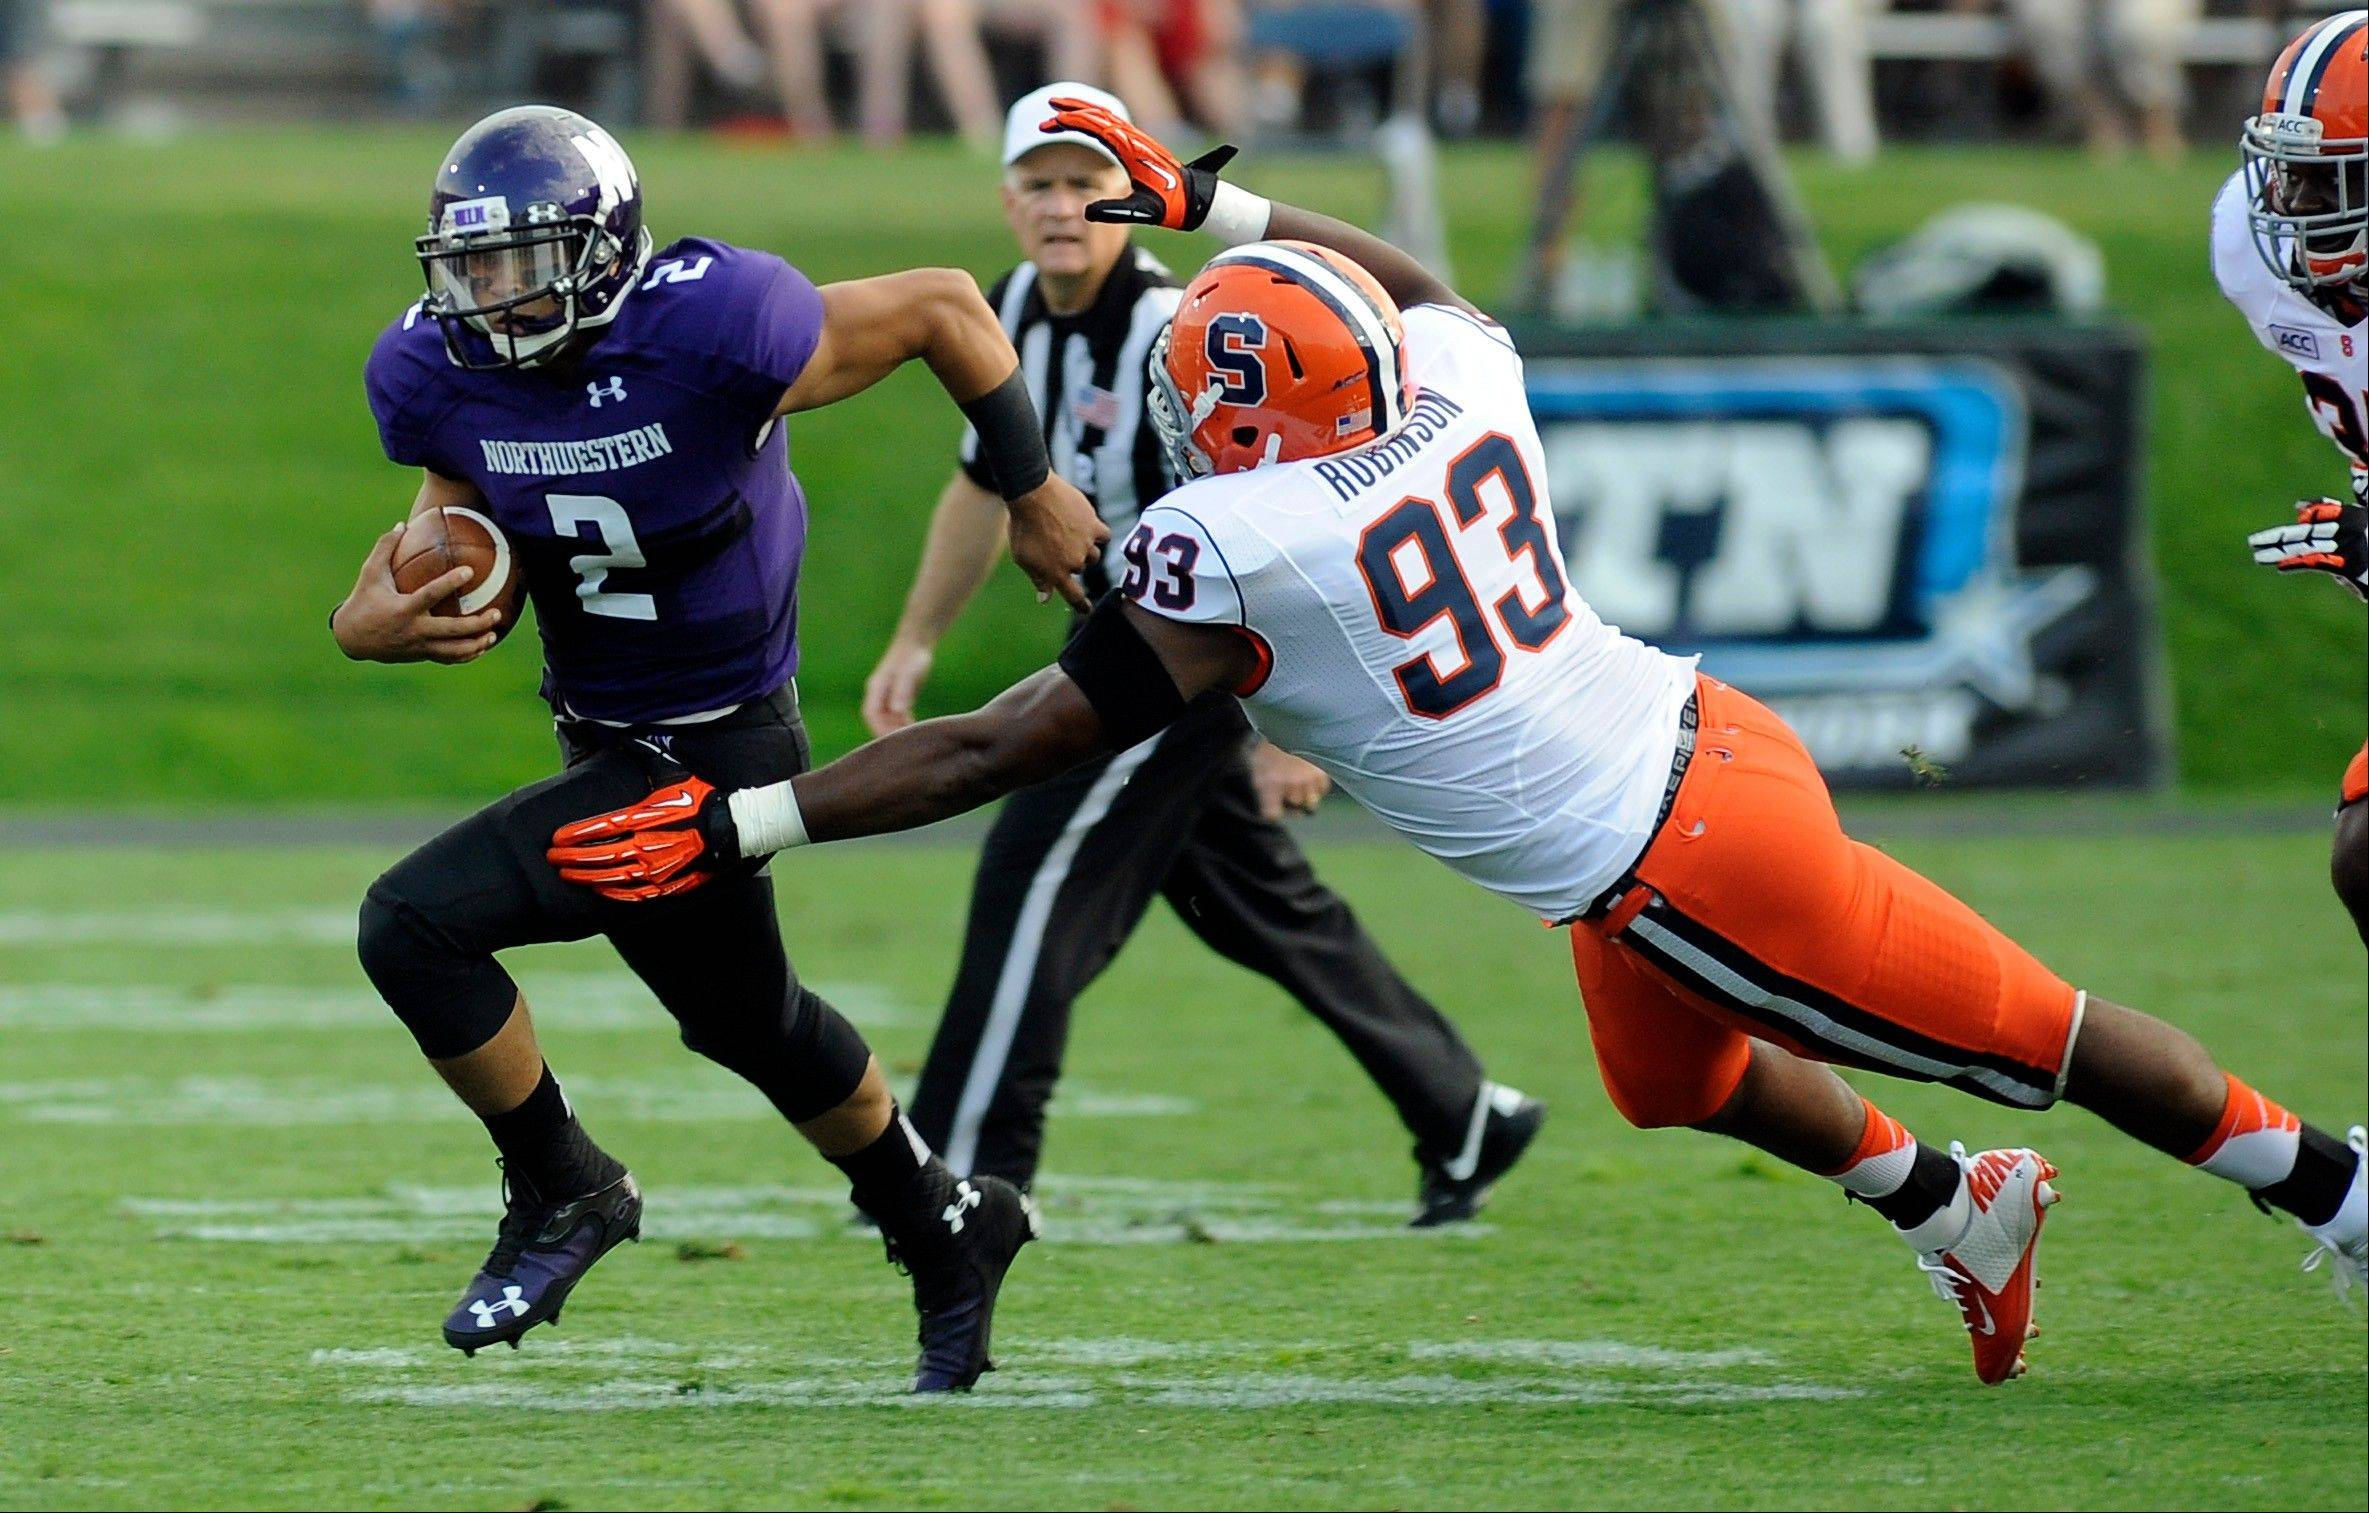 Northwestern quarterback Kain Colter completed 15 of 18 passes and ran for 87 yards on 11 carries in the Wildcats' victory over Syracuse.